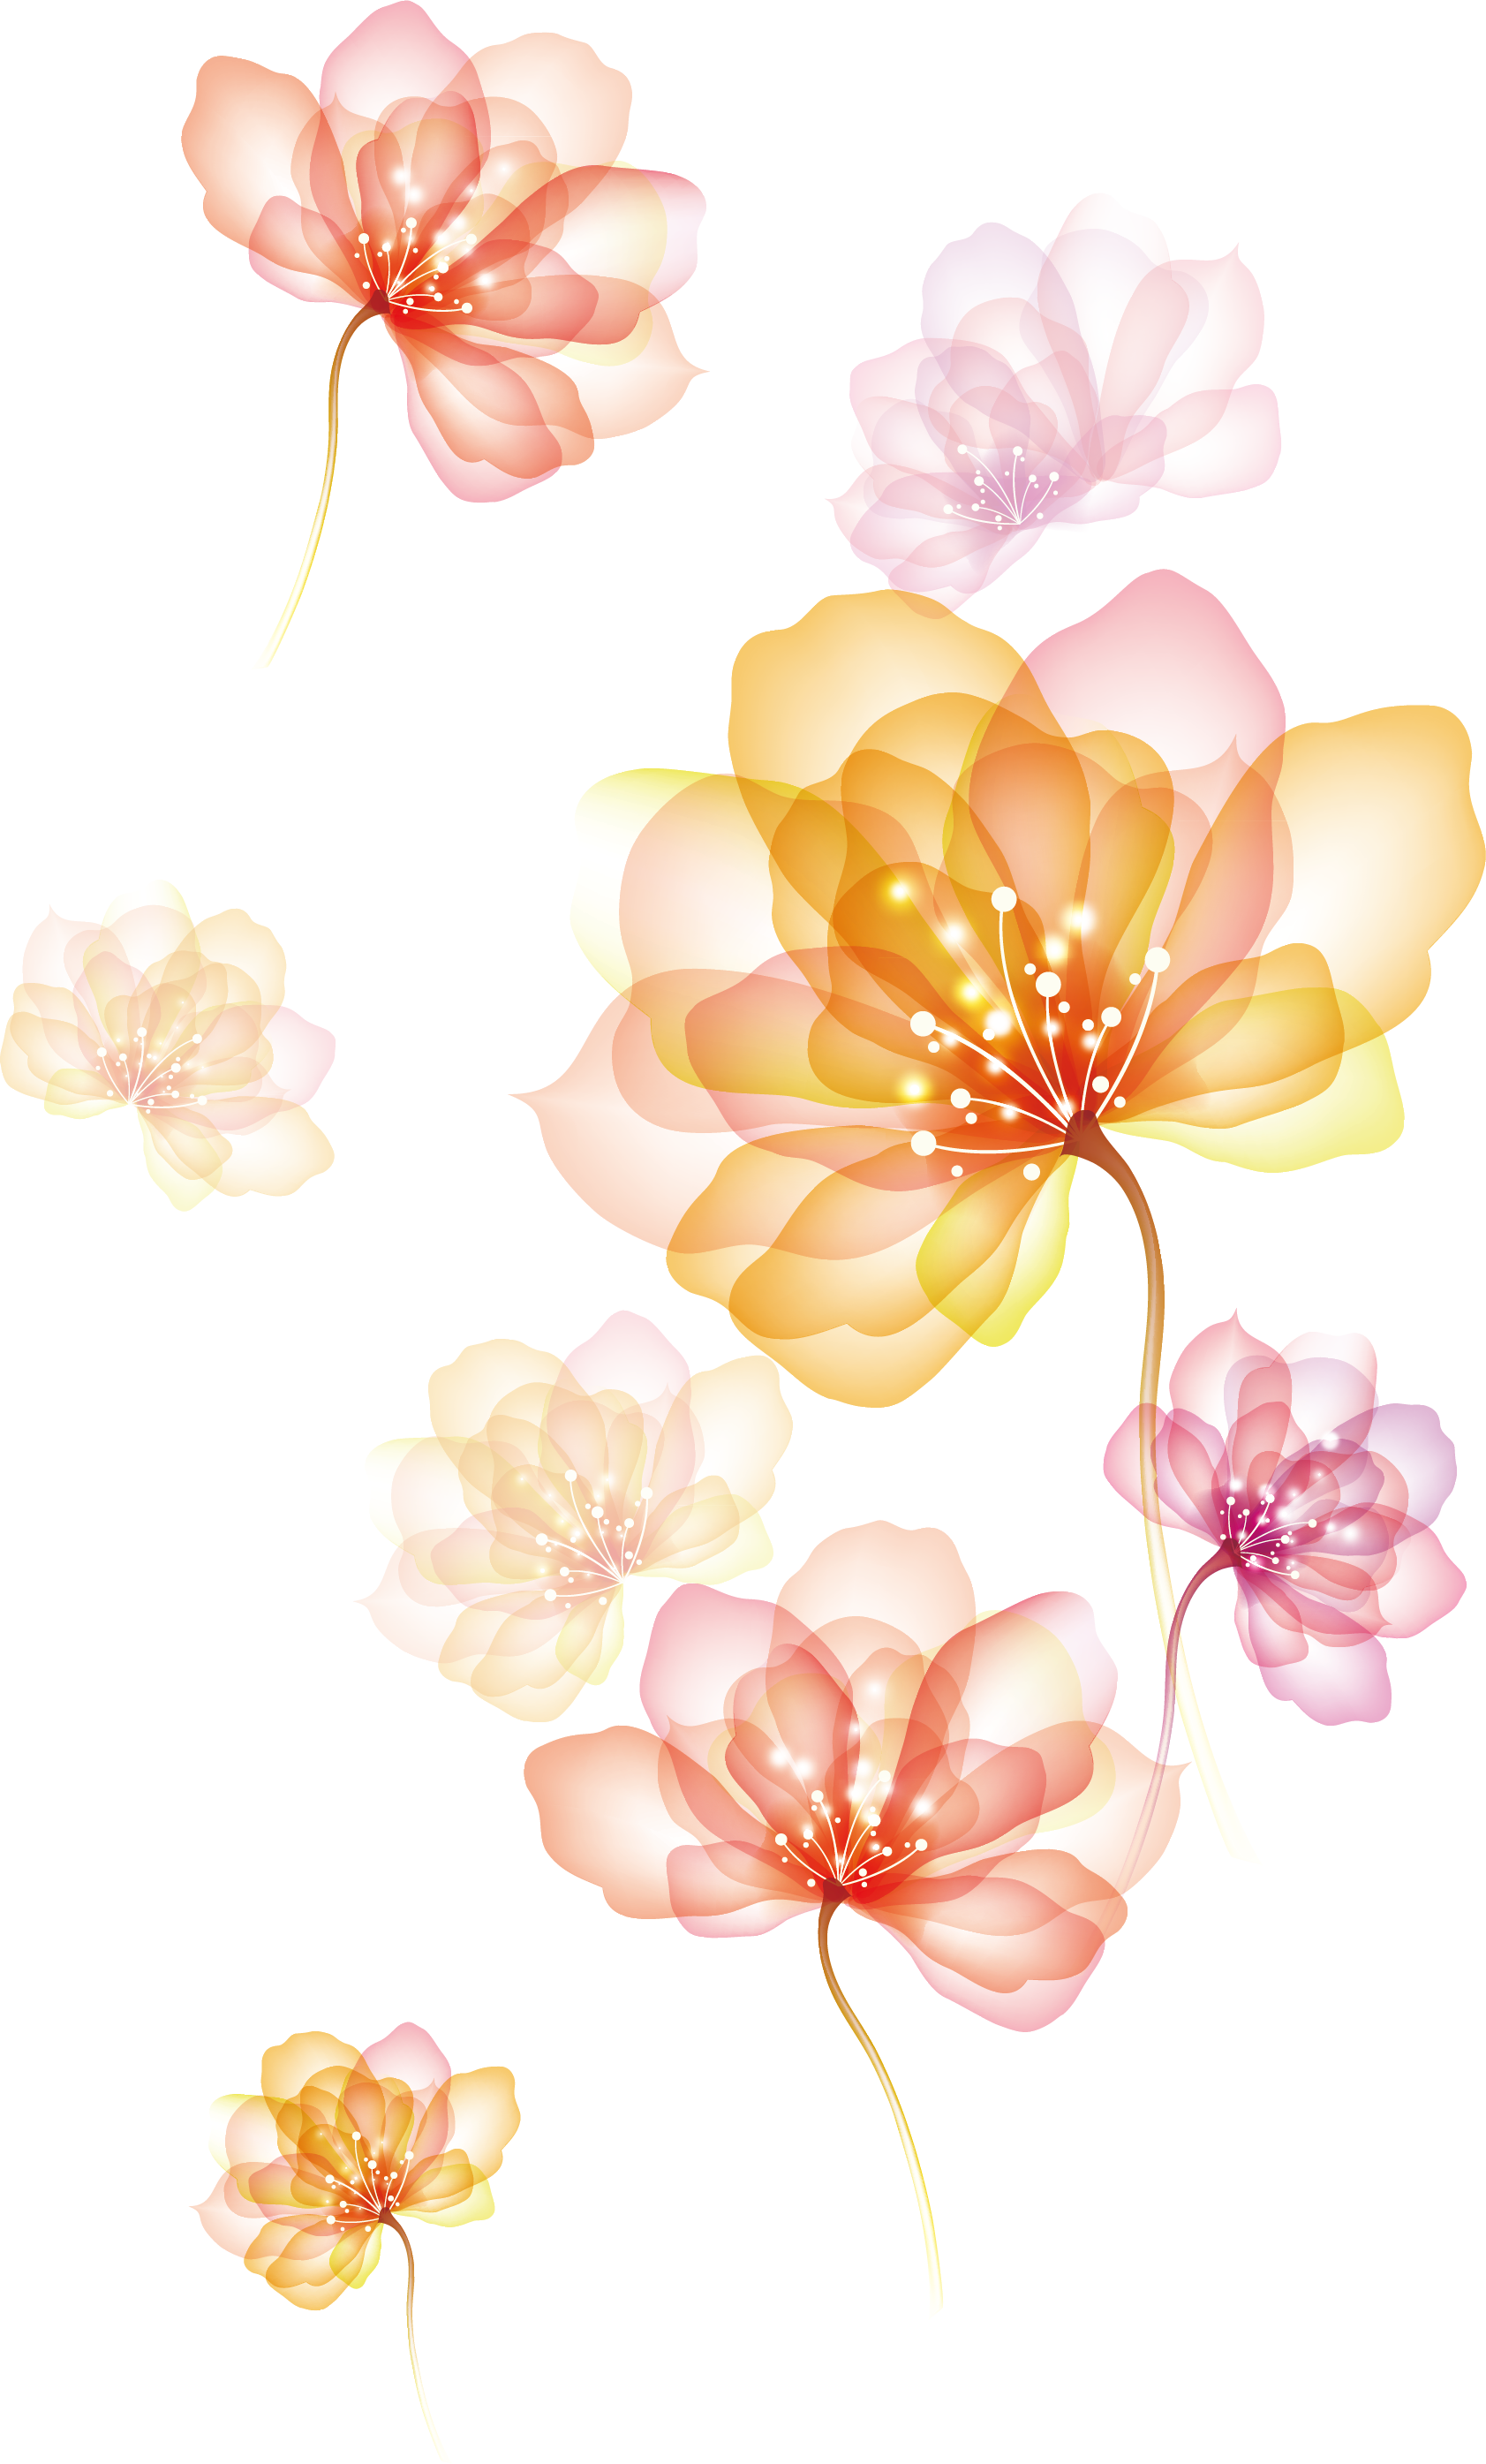 Flower effect png. Of spreading flowers transprent